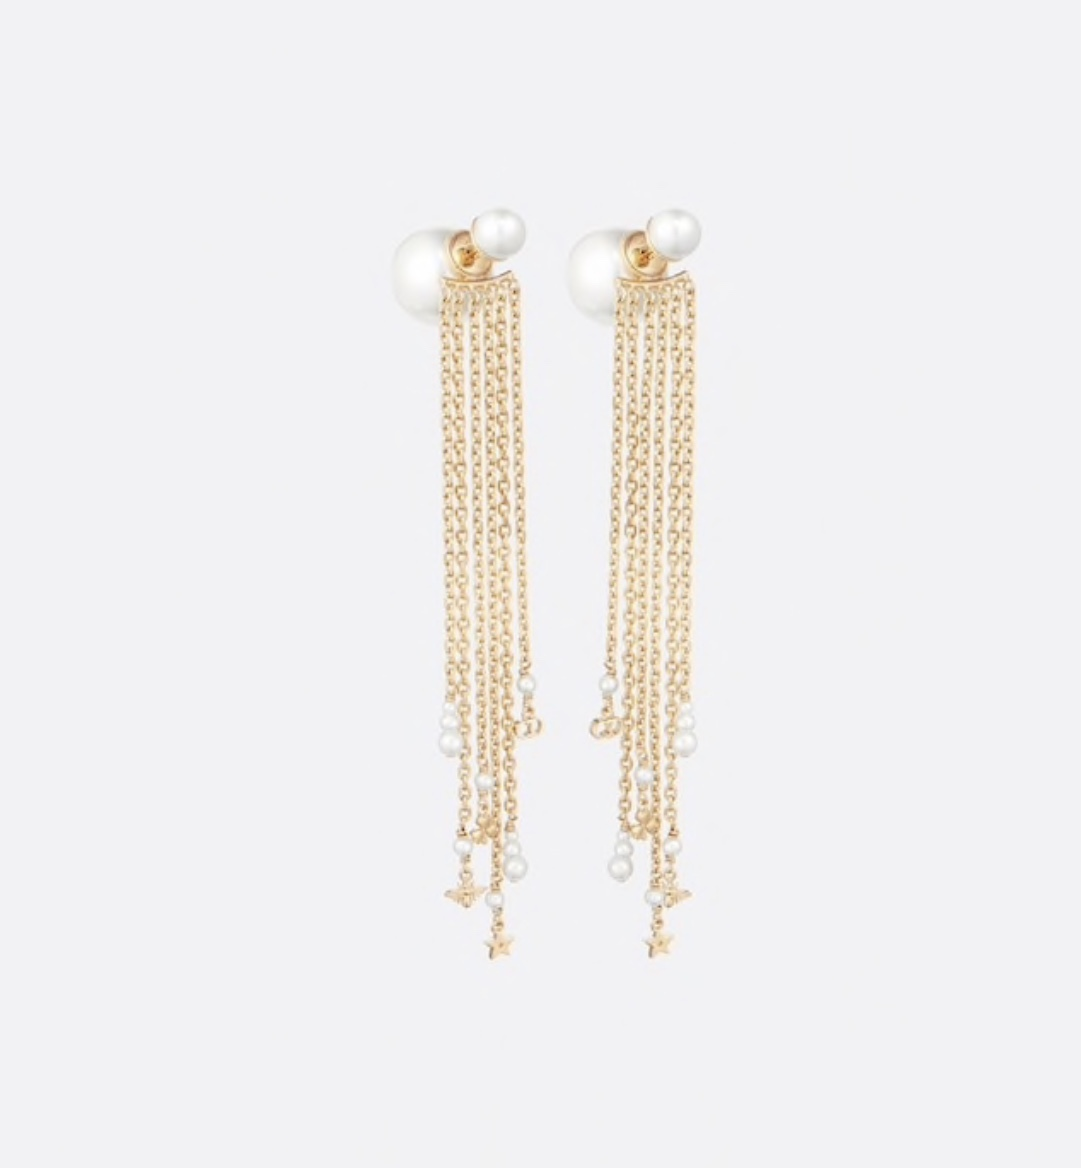 NEW AUTH Christian Dior 2020 DOUBLE PEARL EARRINGS GOLD DANGLE MULTI STRAND